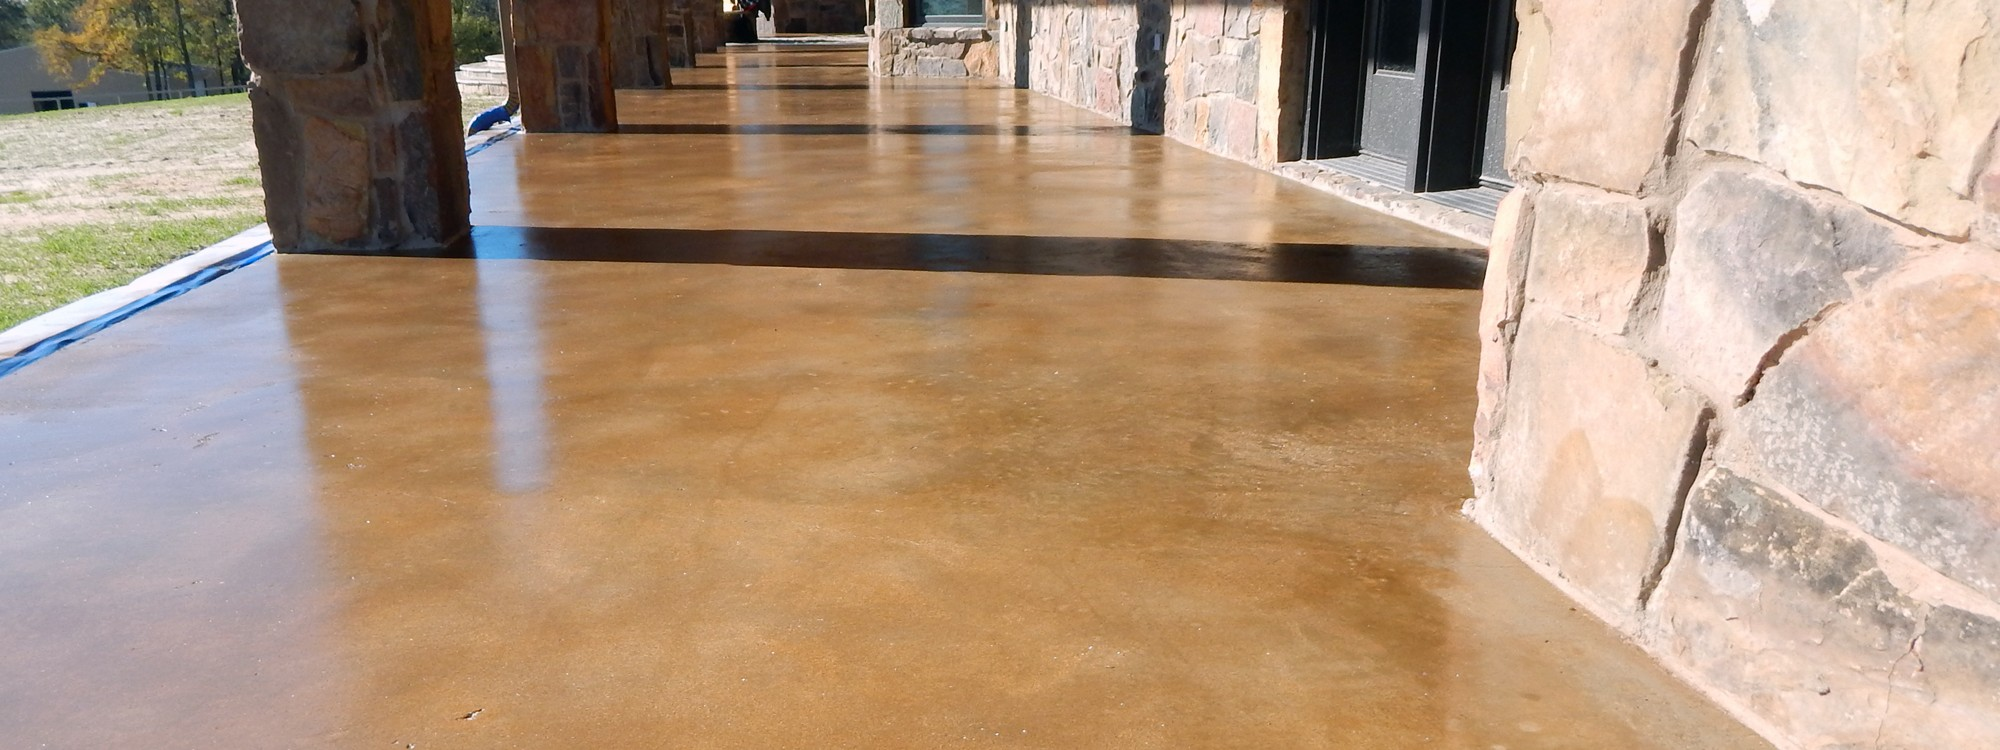 Concrete design stained flooring longview tx tyler tx for Texas floors